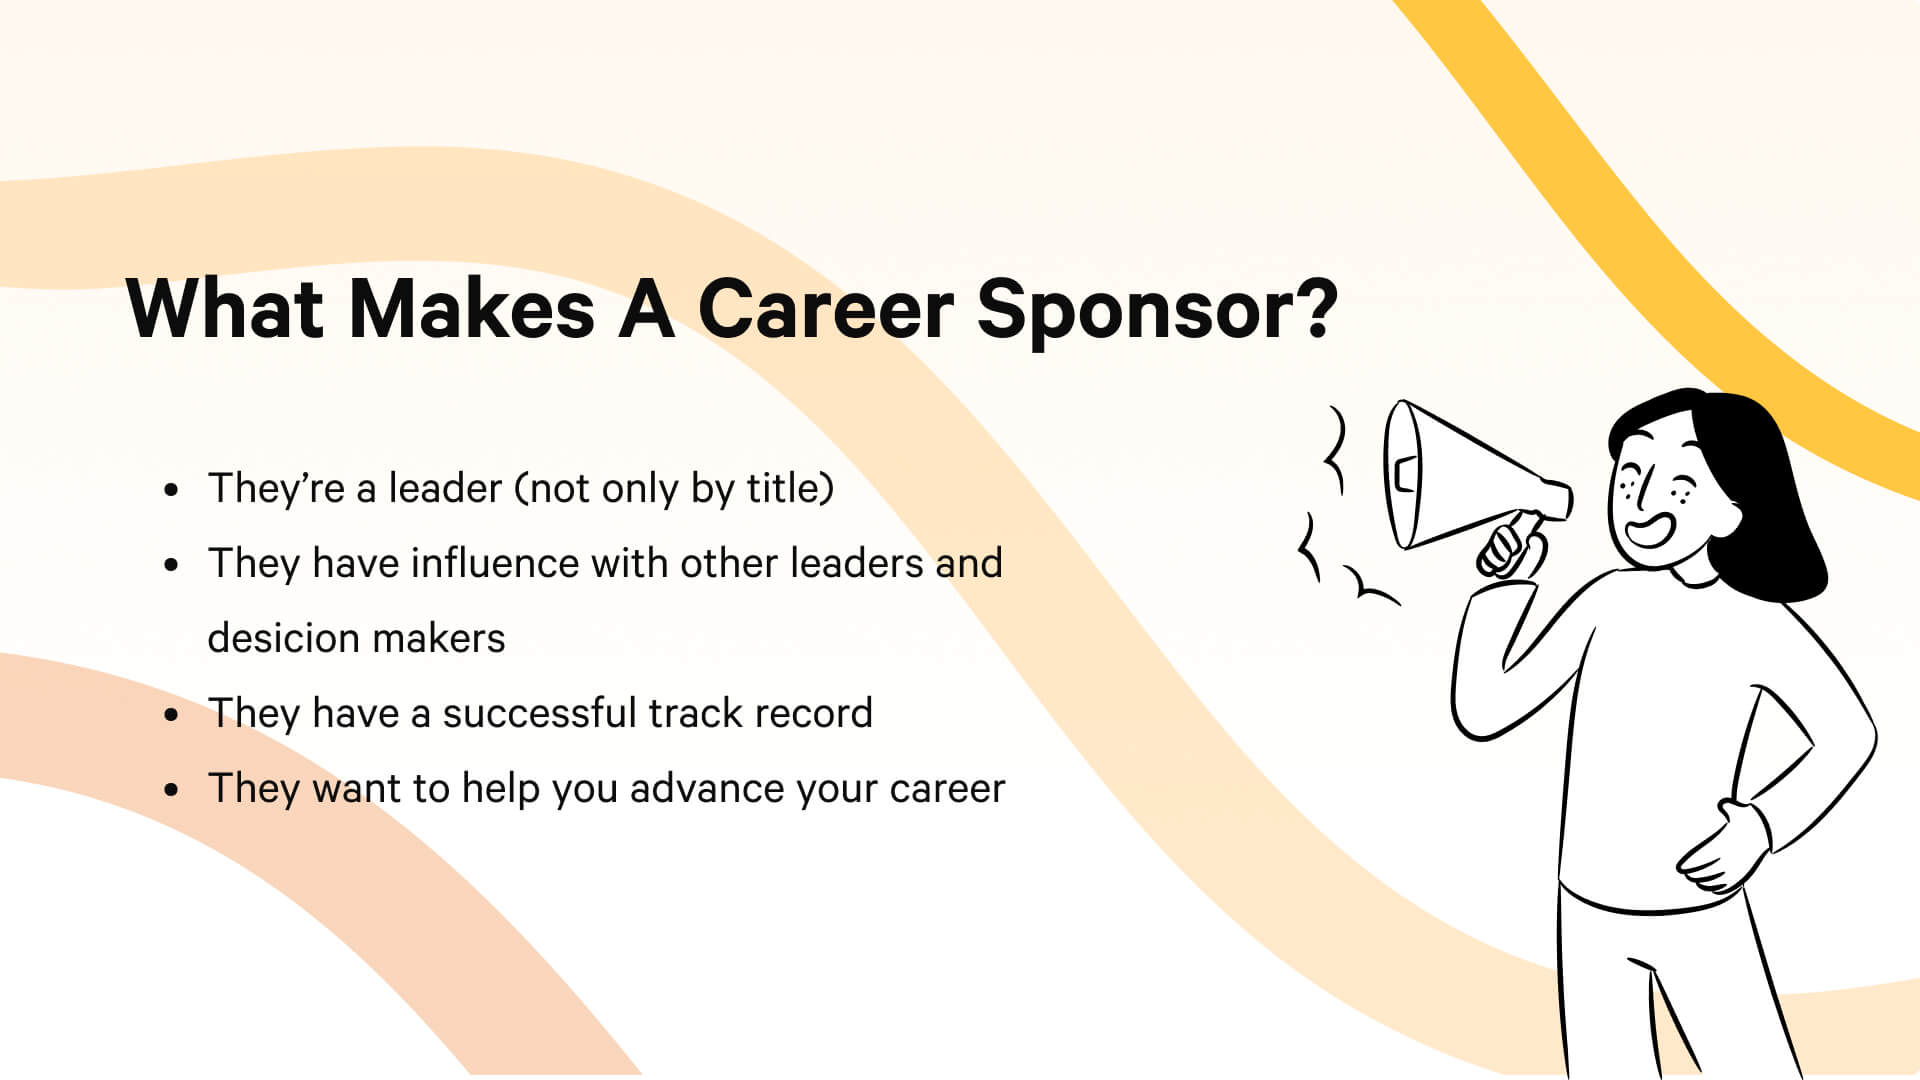 Four attributes of a workplace career sponsor